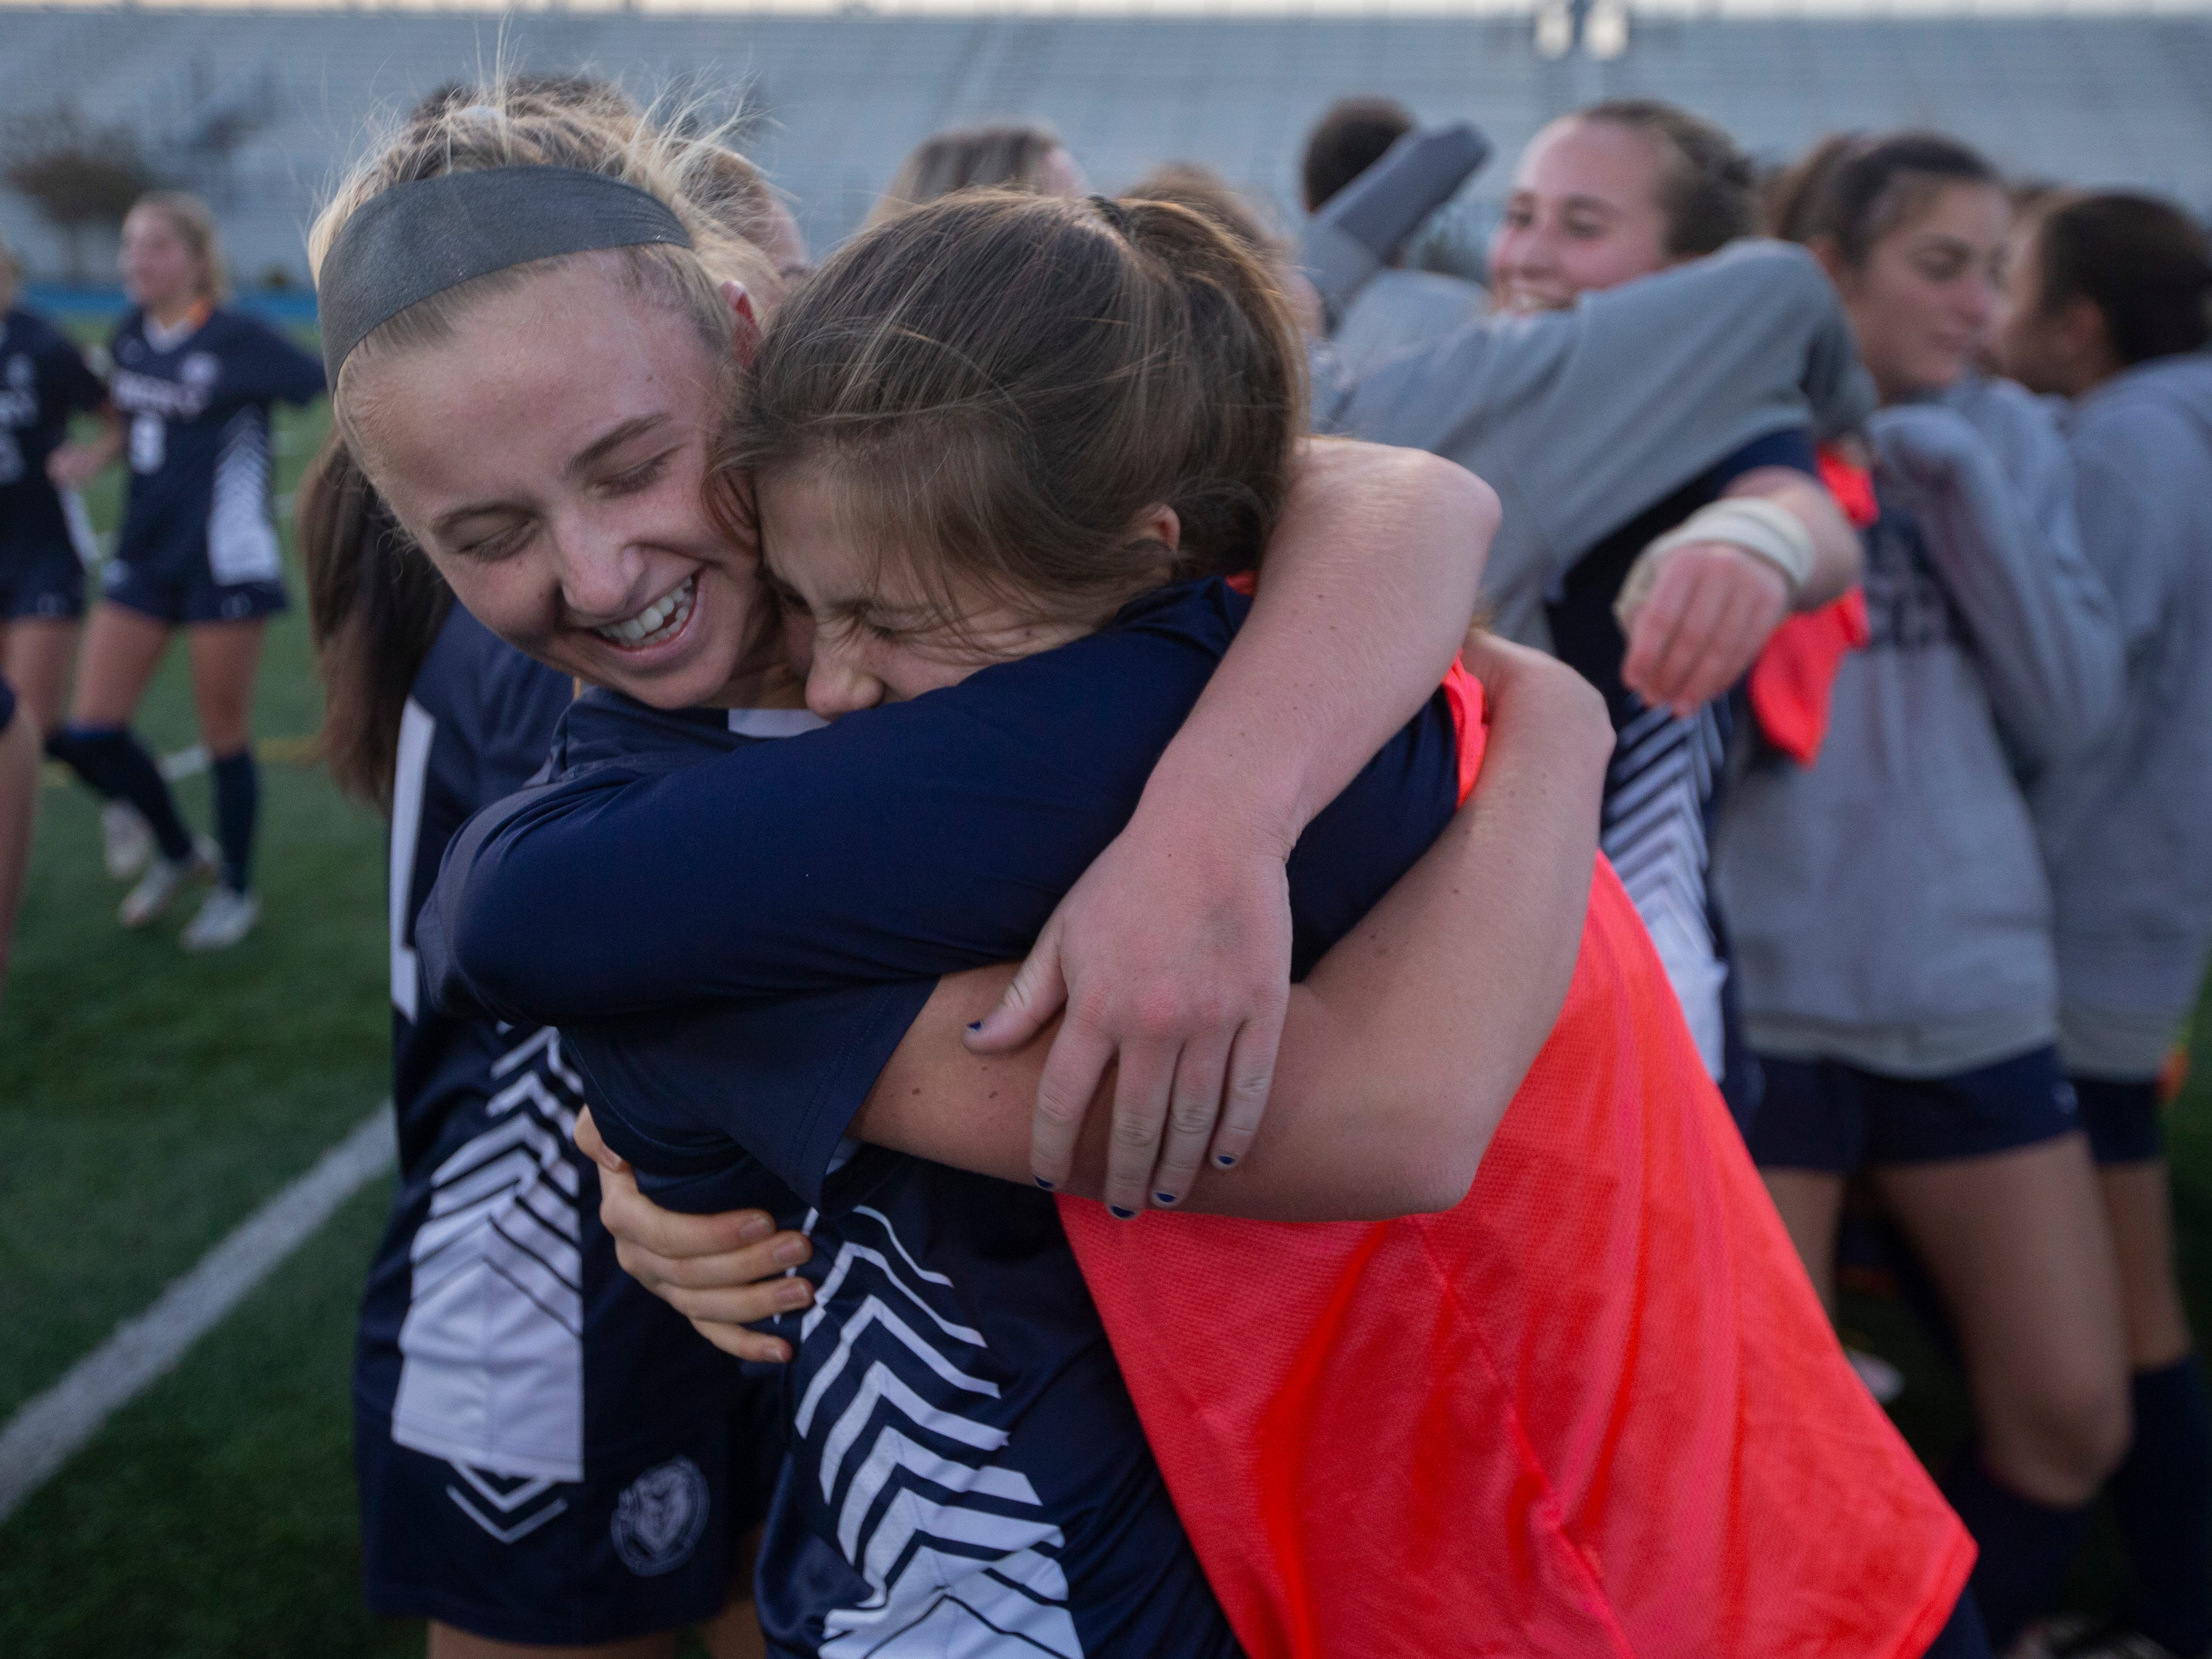 Pingry players celebrate their Non-Public A championship win on Sunday, Nov. 11, 2018 at Kean University.